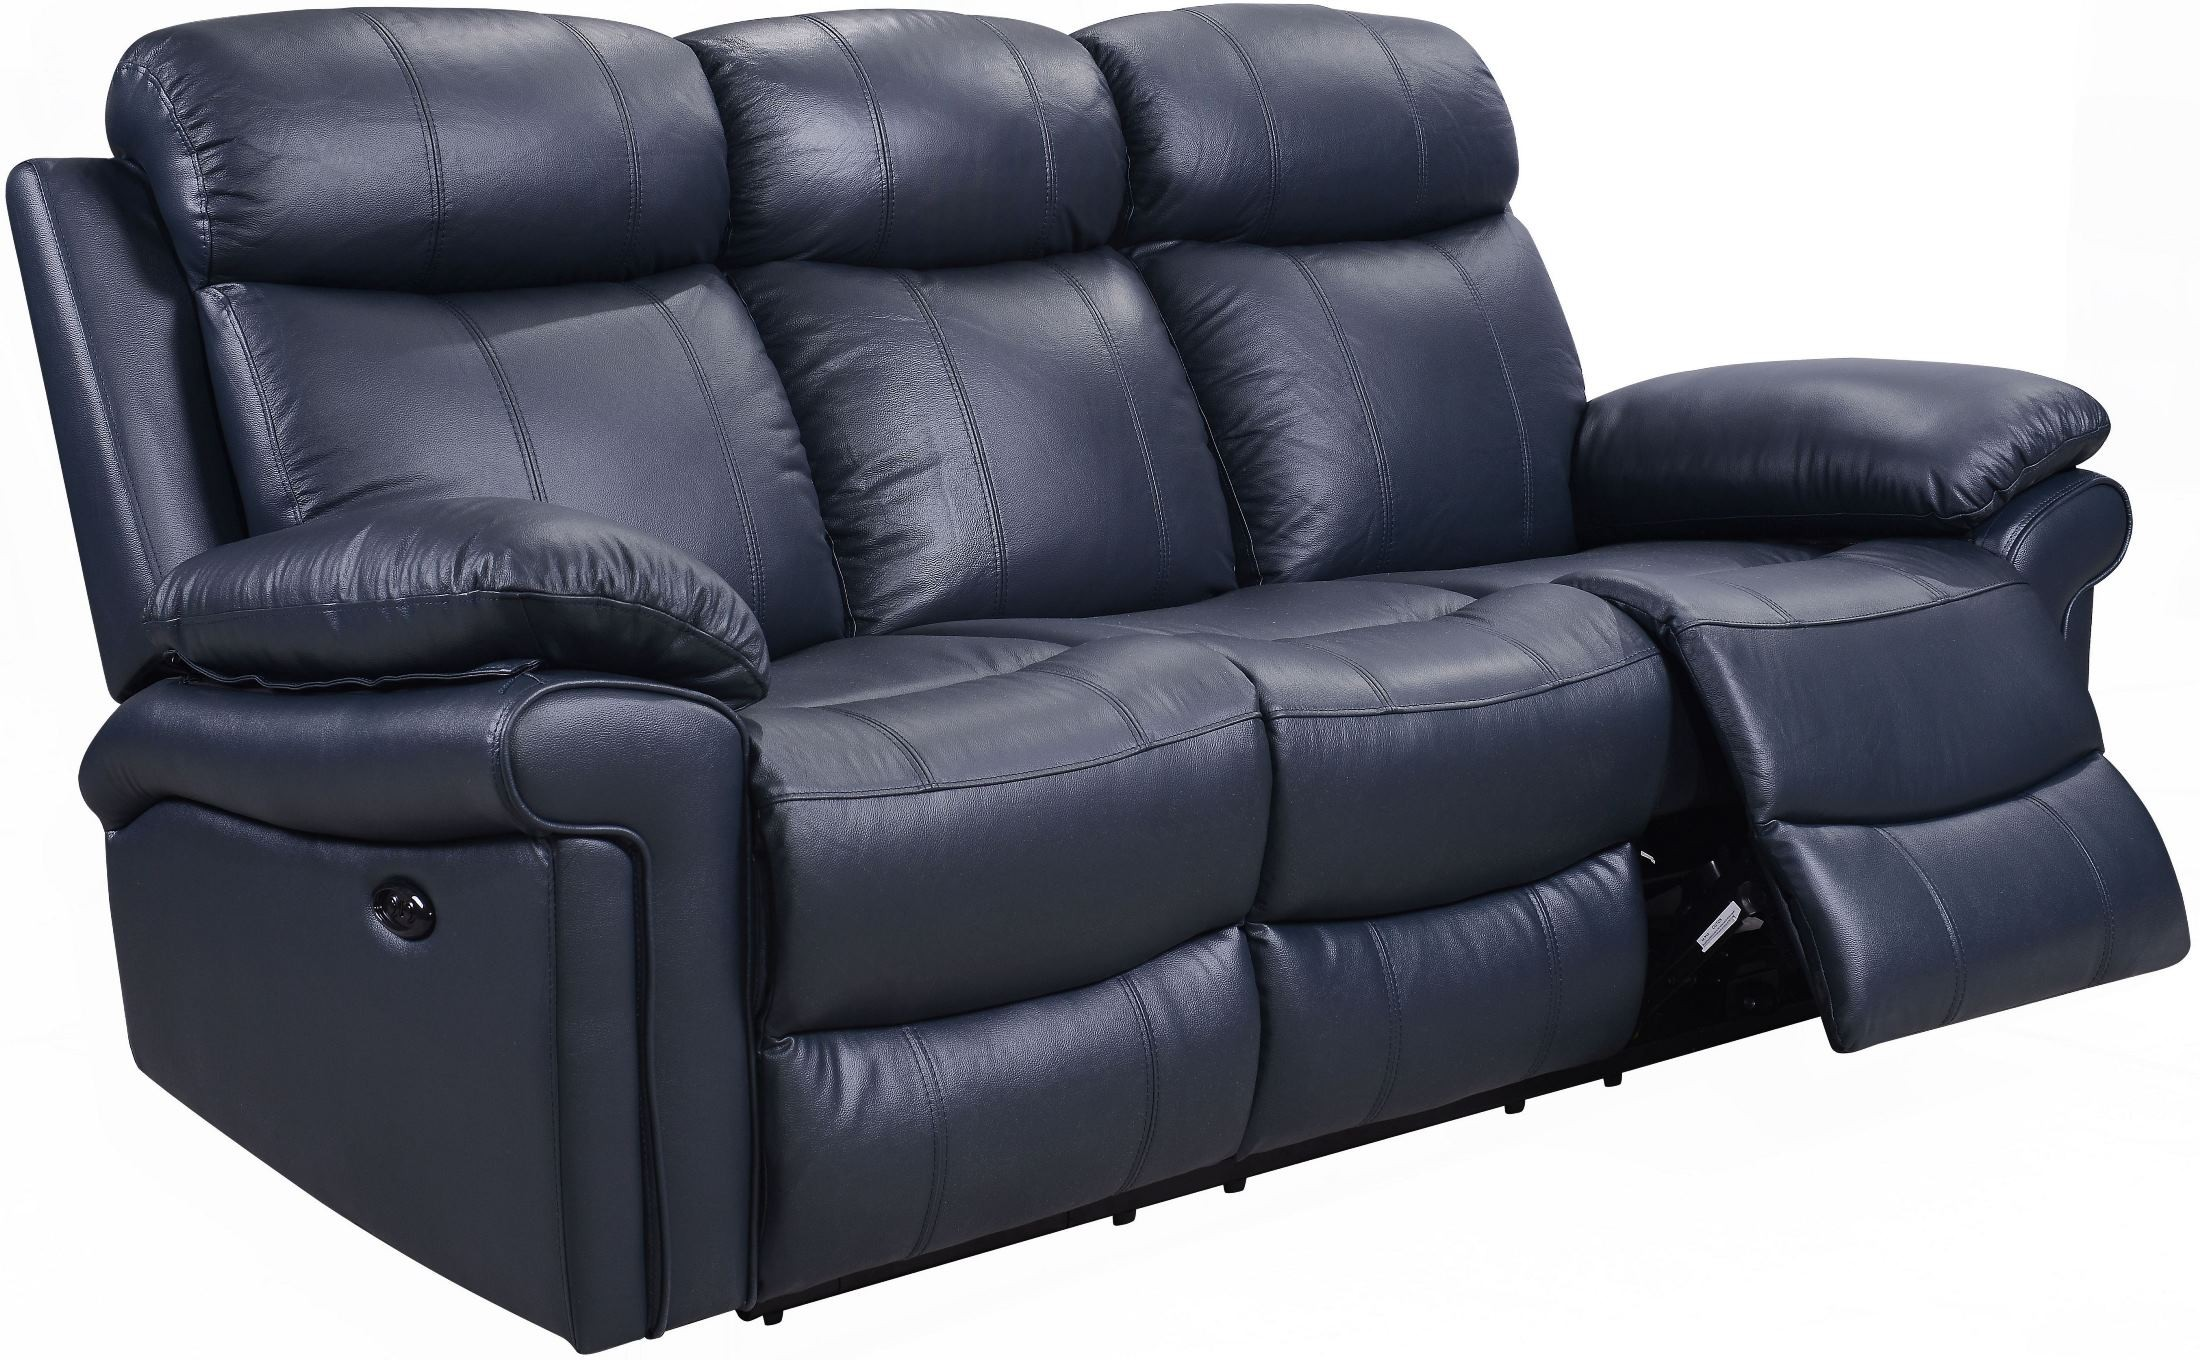 Shae Joplin Blue Leather Power Reclining Sofa From Leather Italia | Coleman  Furniture